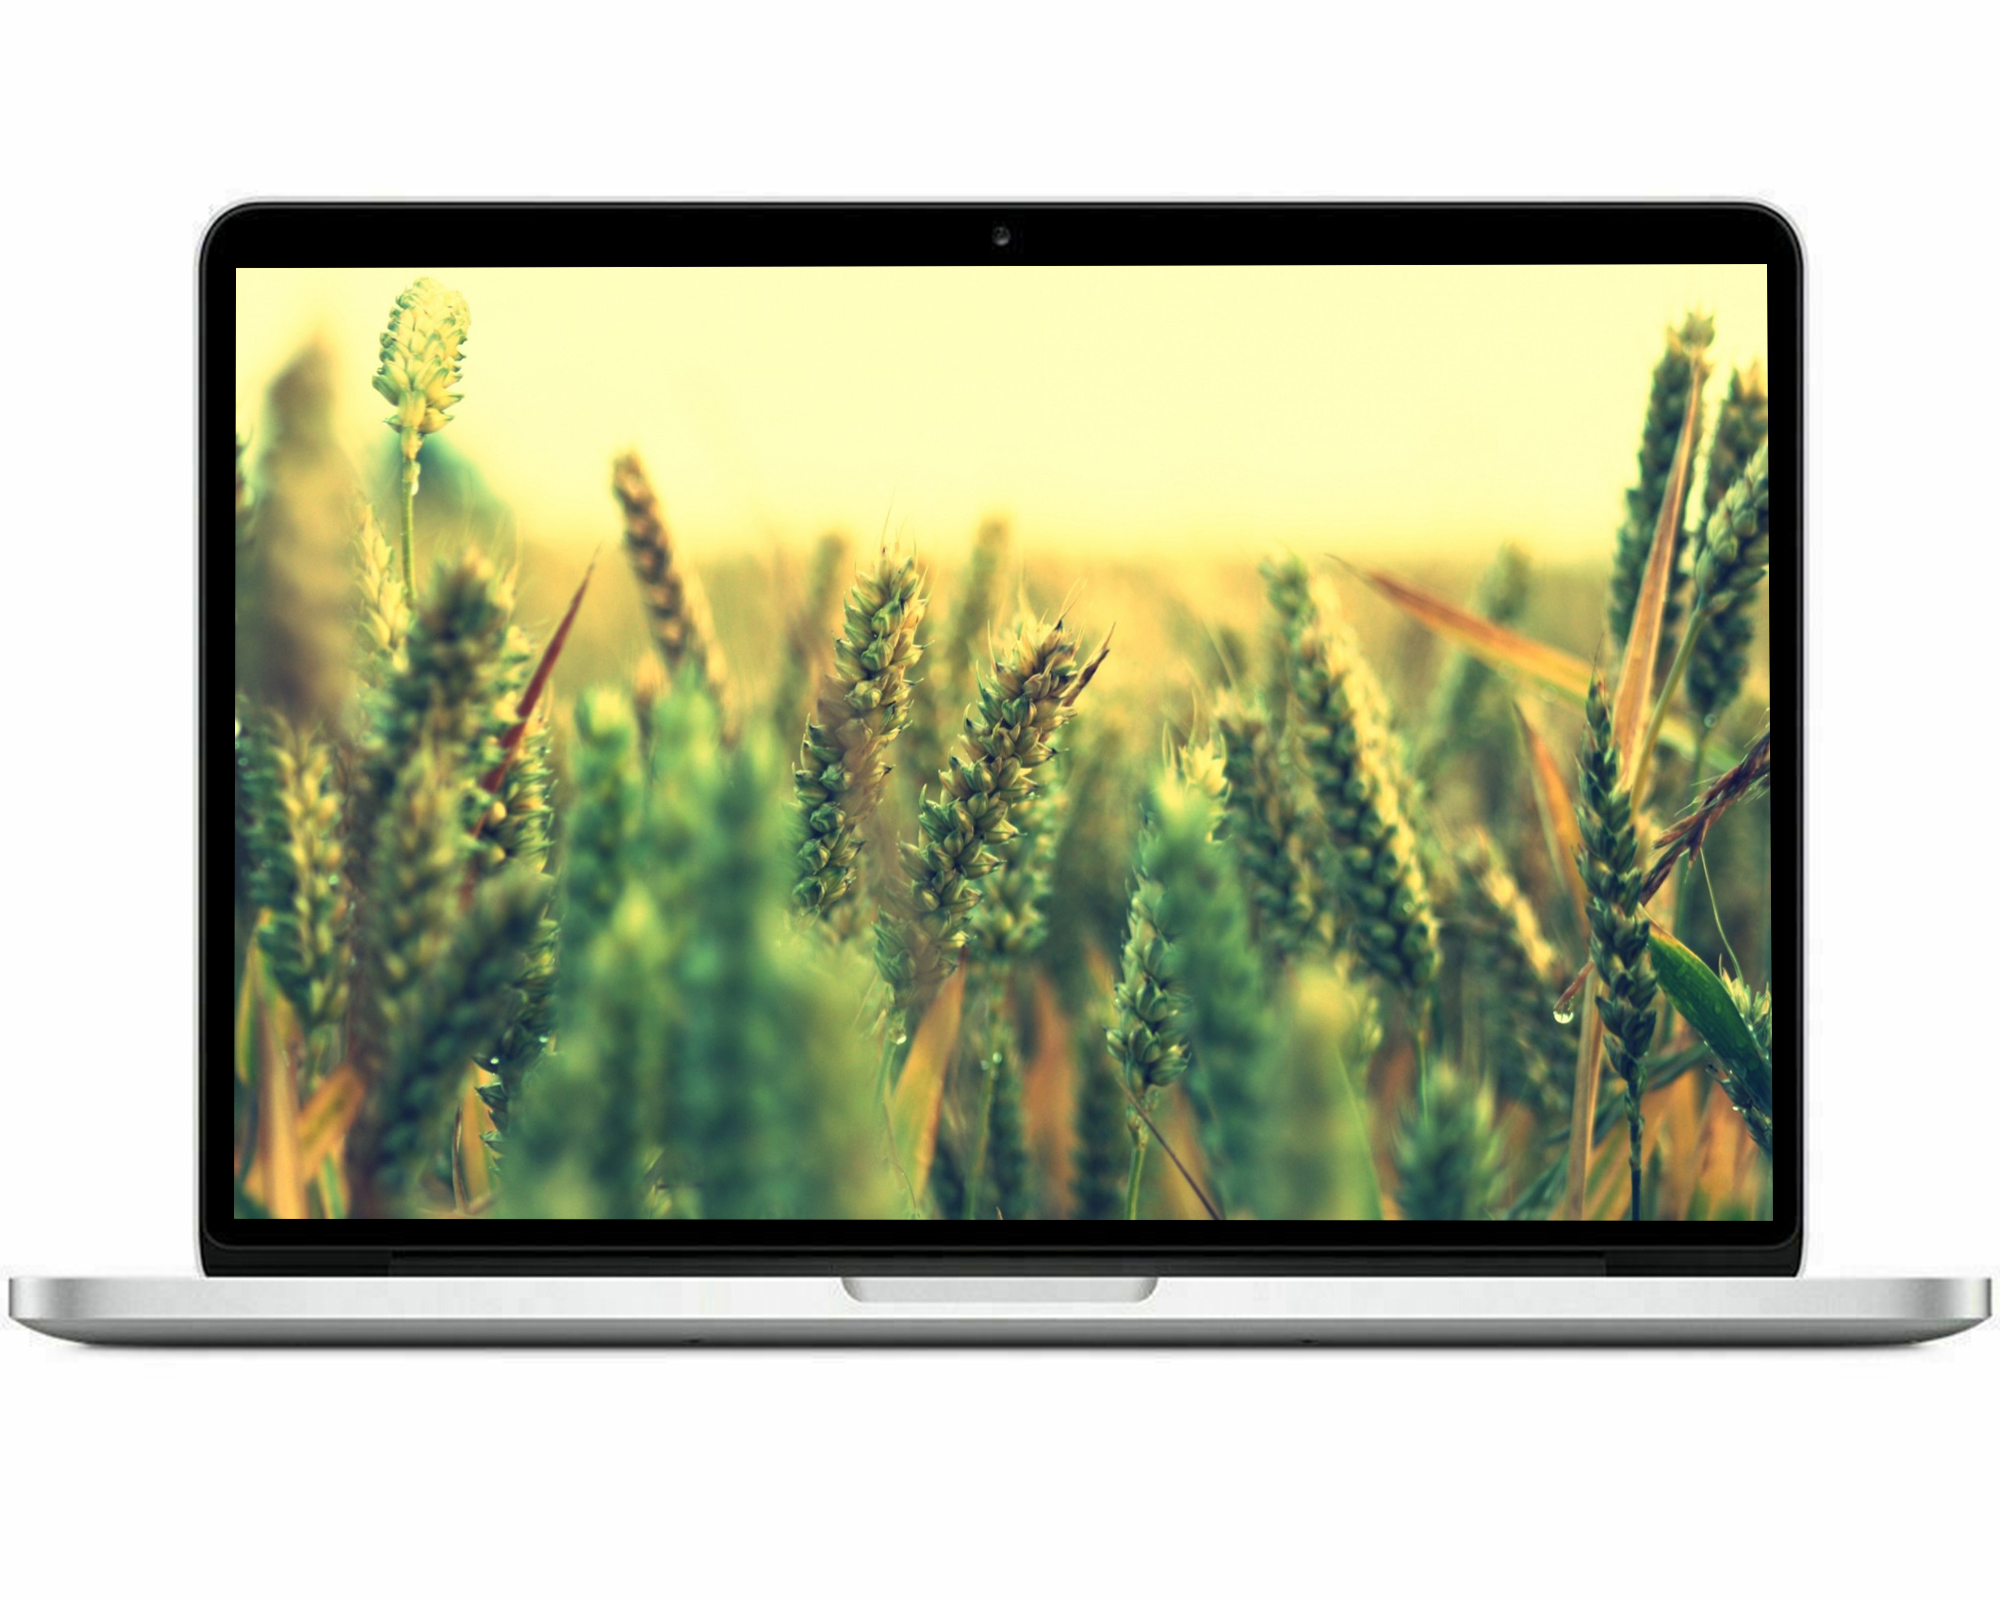 Refurbished - Apple MacBook Pro 13.3-inch, Intel Core i5, 500GB HDD, 8GB RAM, Bundle Deal: Black Case, Headset, Wireless Mouse, and Free 2-Day Shipping